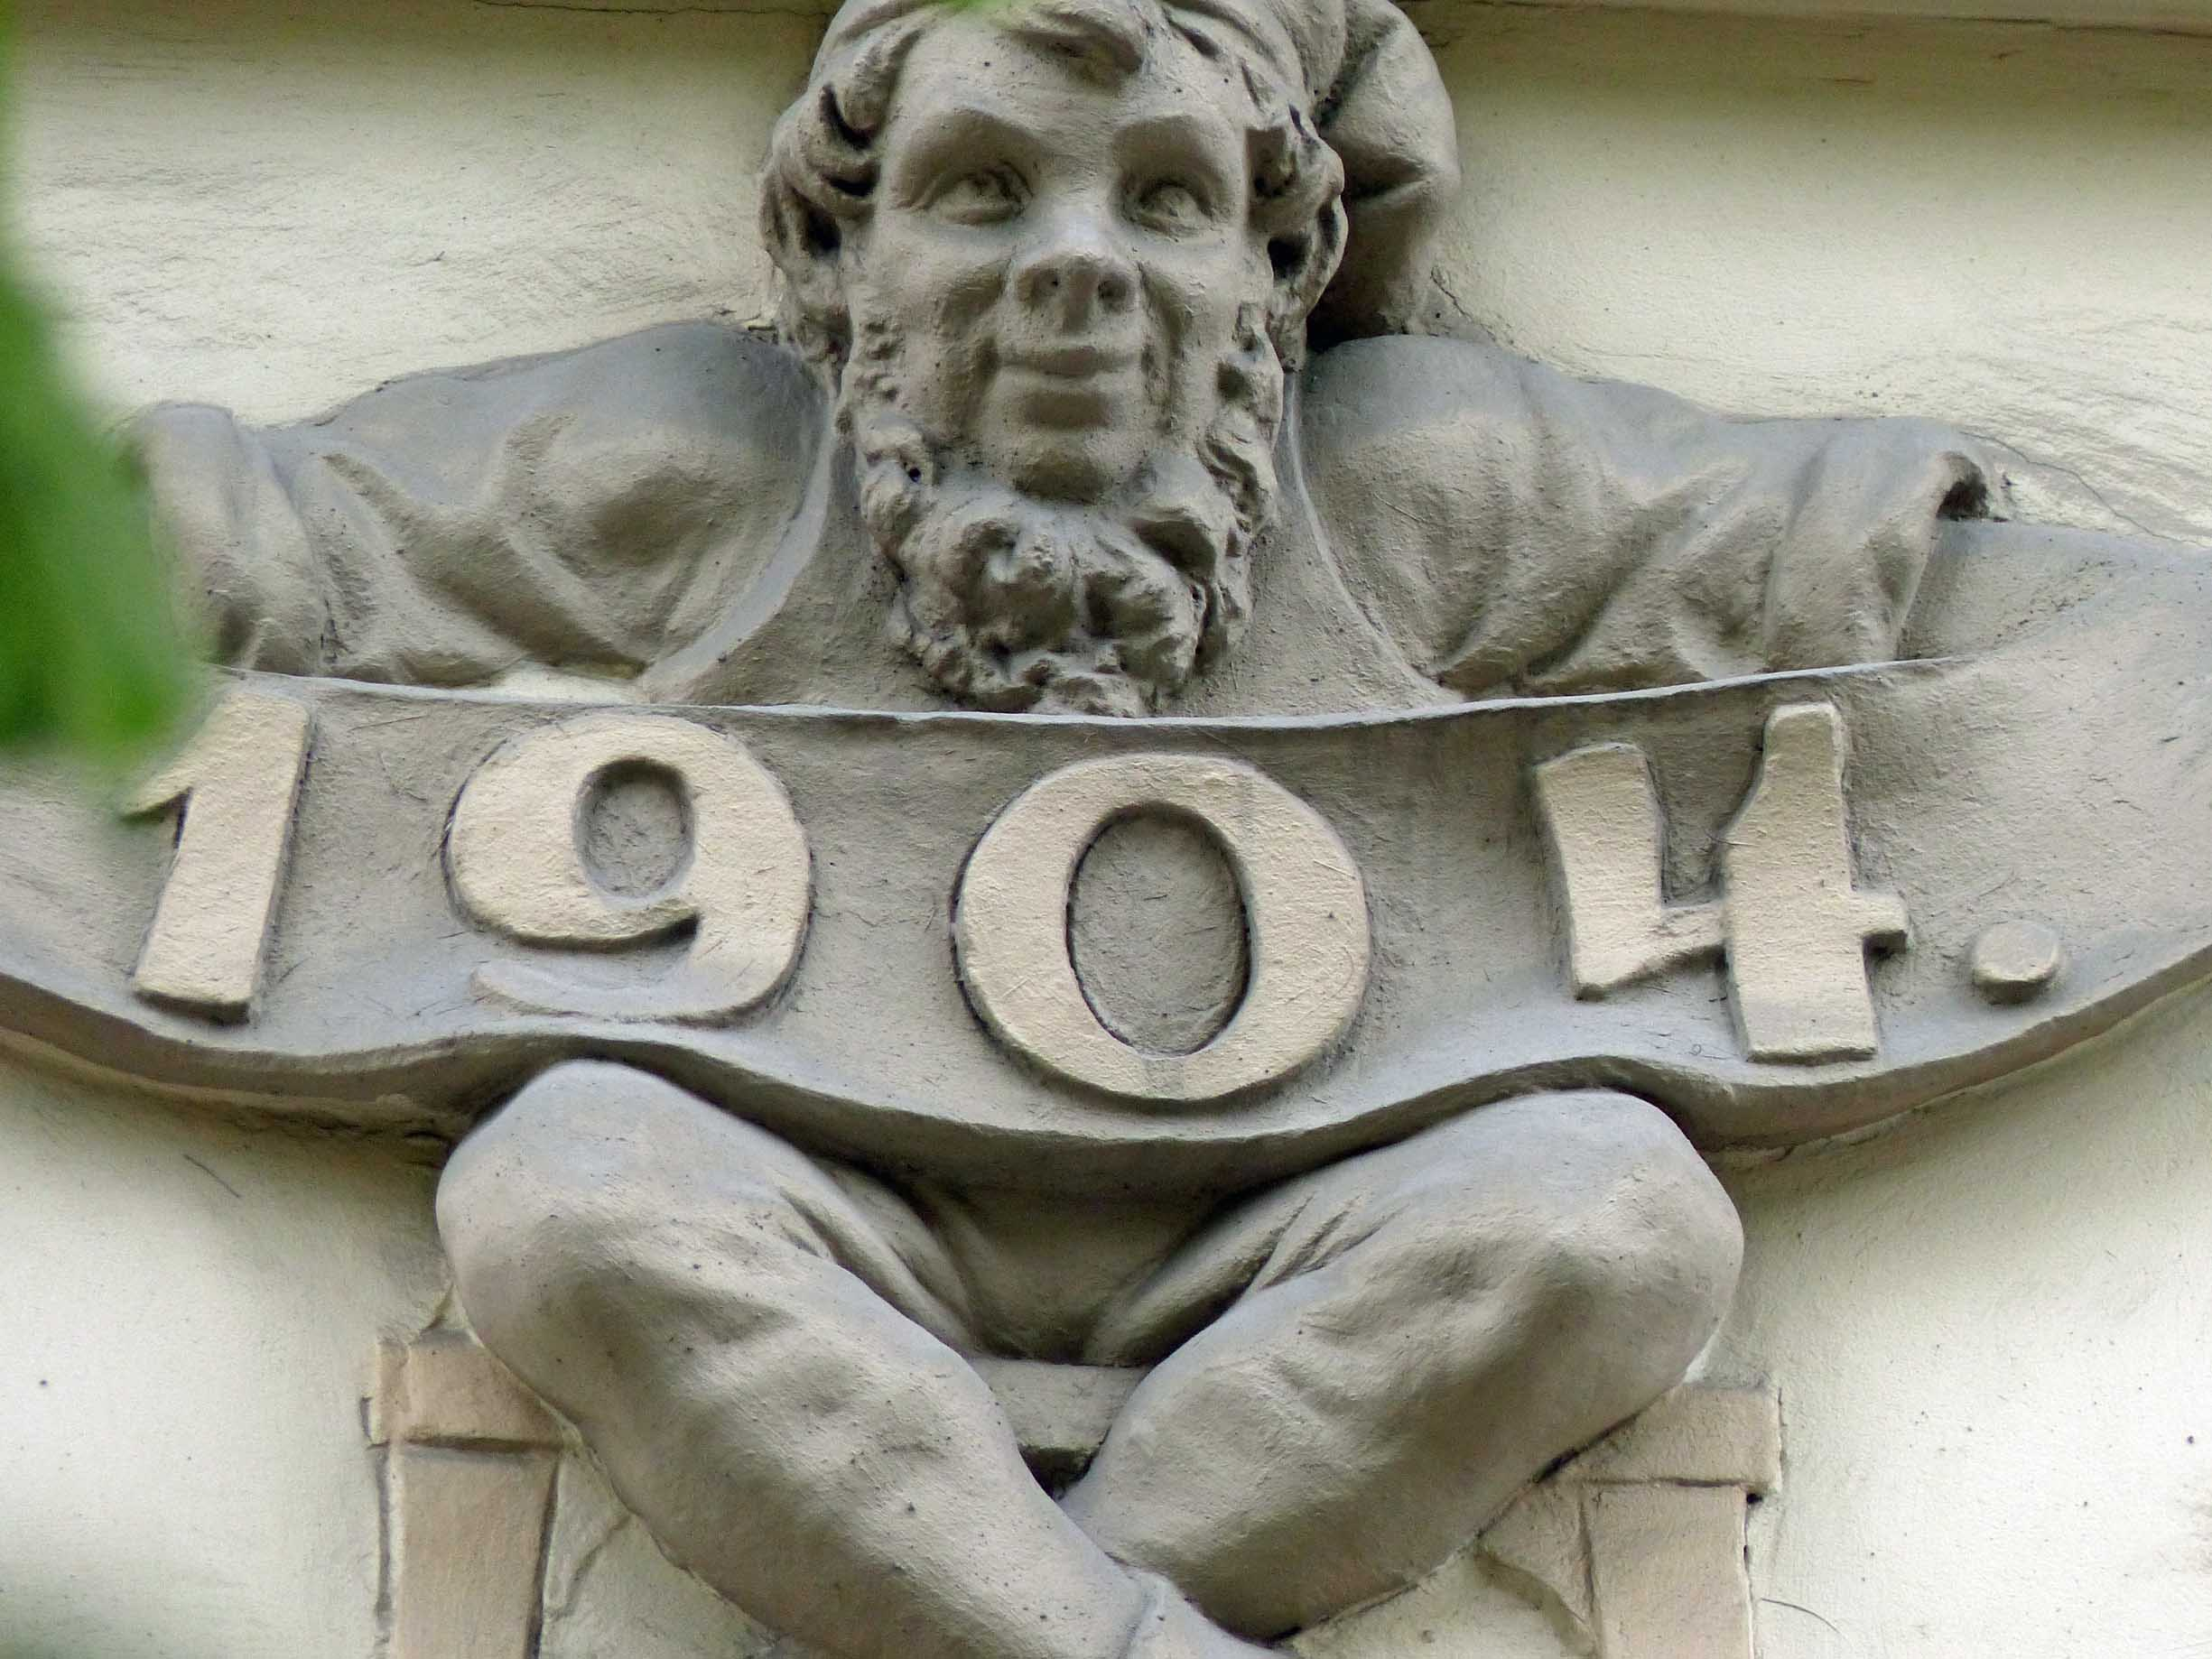 Gnome-like carved figure holding banner with date 1904